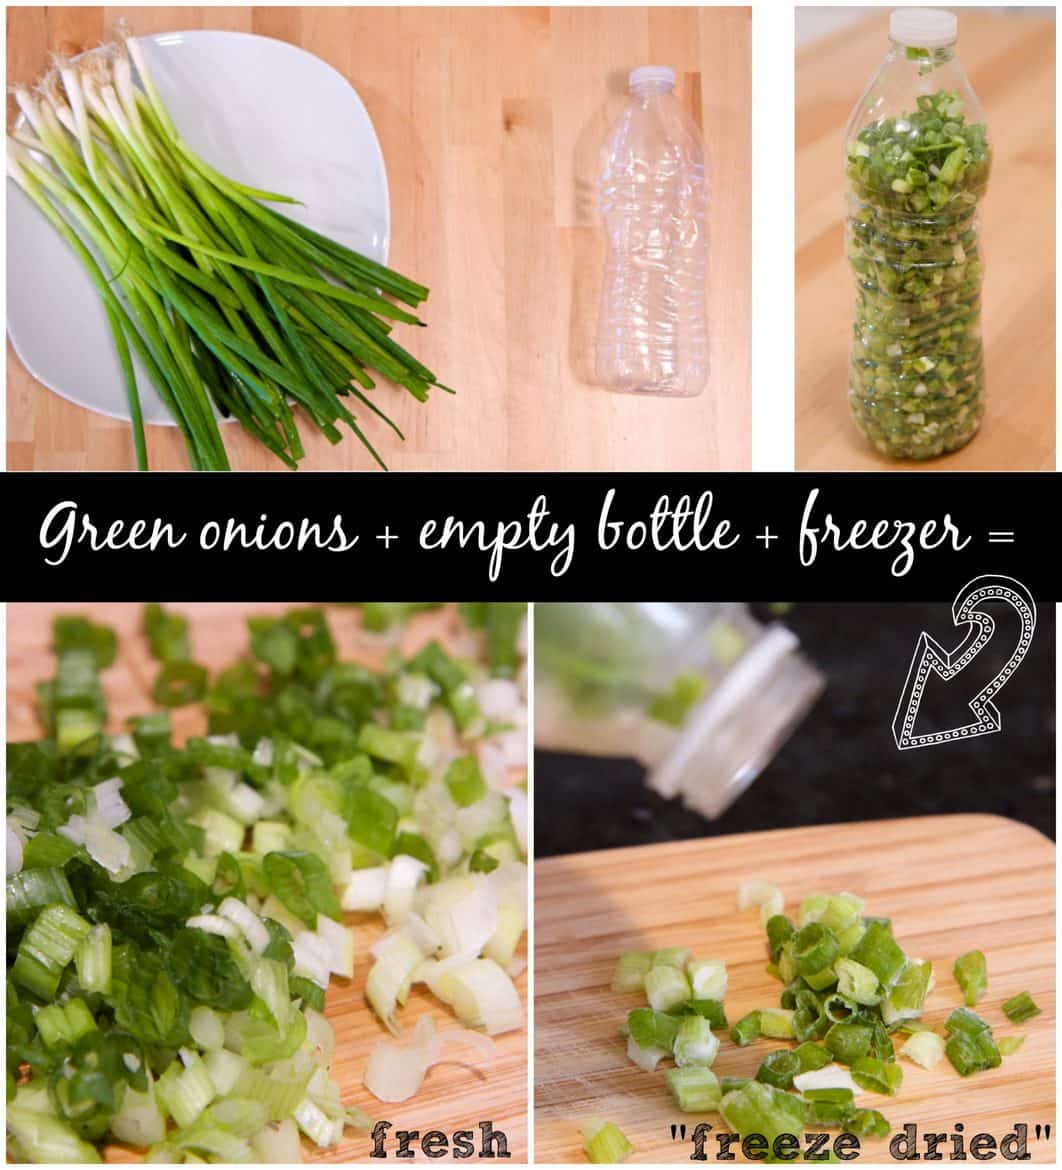 freeze dried green onions